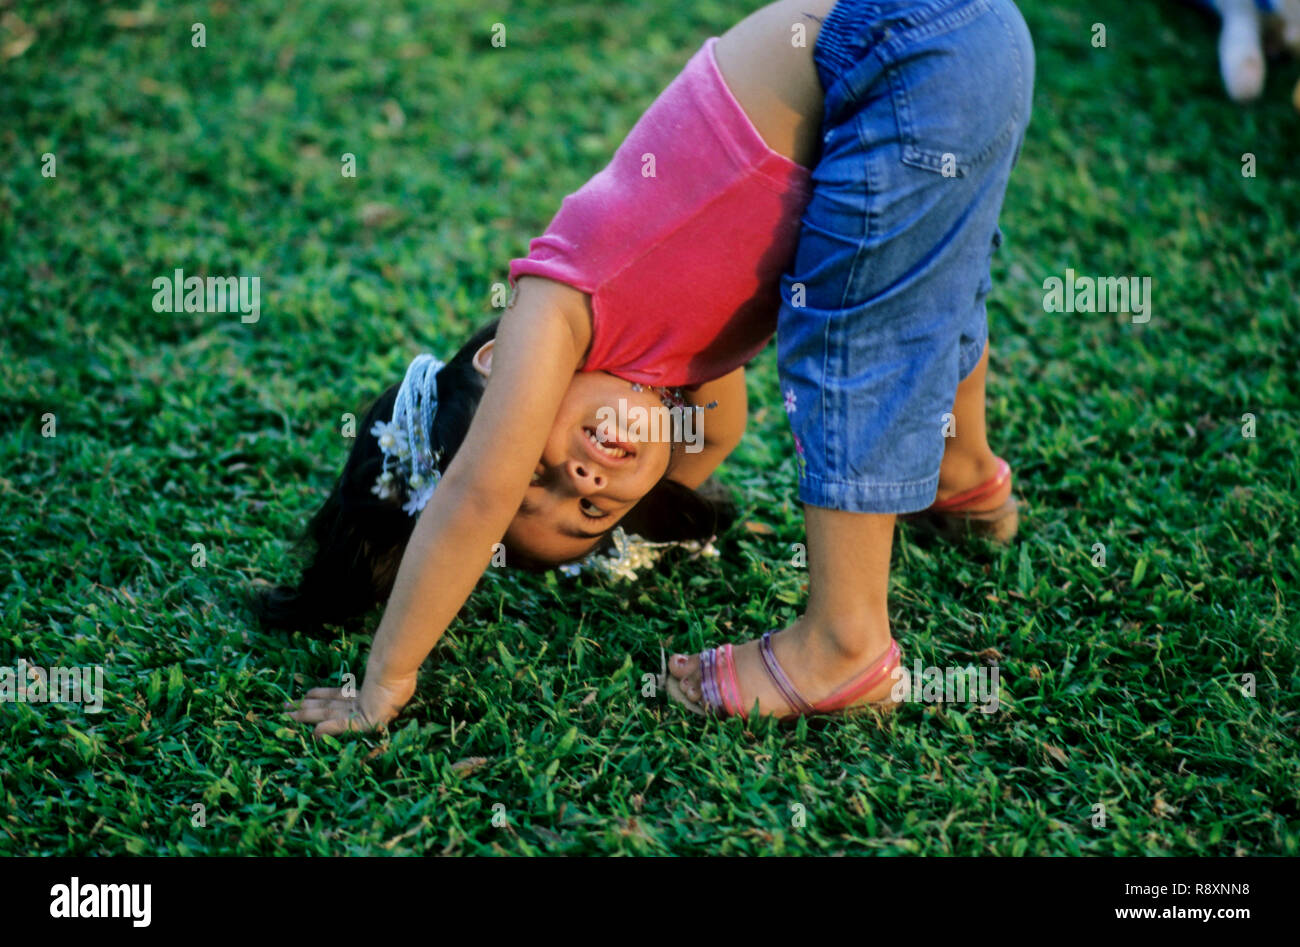 girl bend done and looking MR.NO.273 - Stock Image